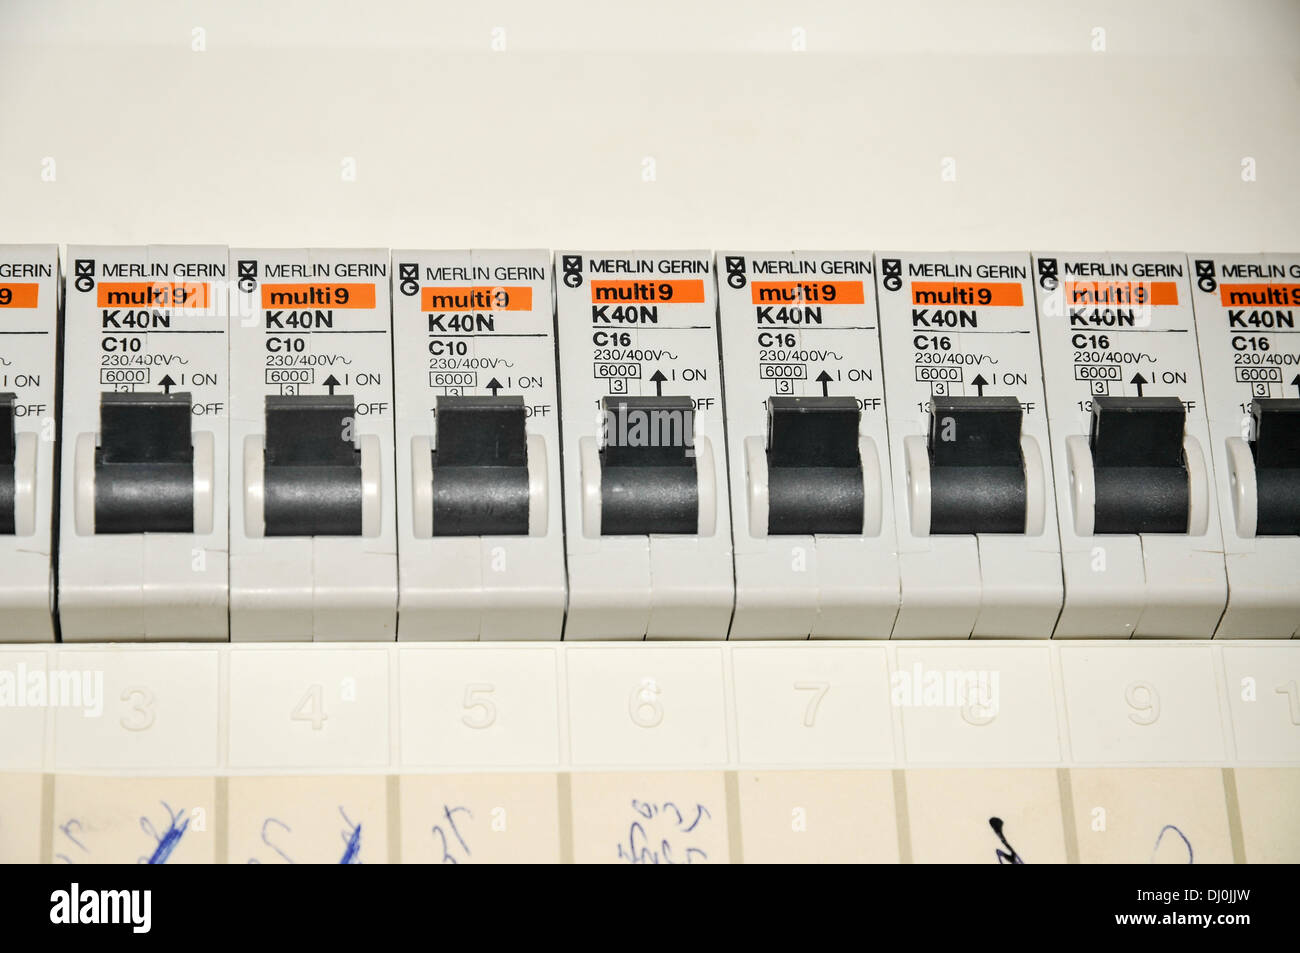 Domestic Fuse Box Stock Photos Images Alamy How Do I Change A In Breaker Close Up With Trip Switches Circuit Breakers Image